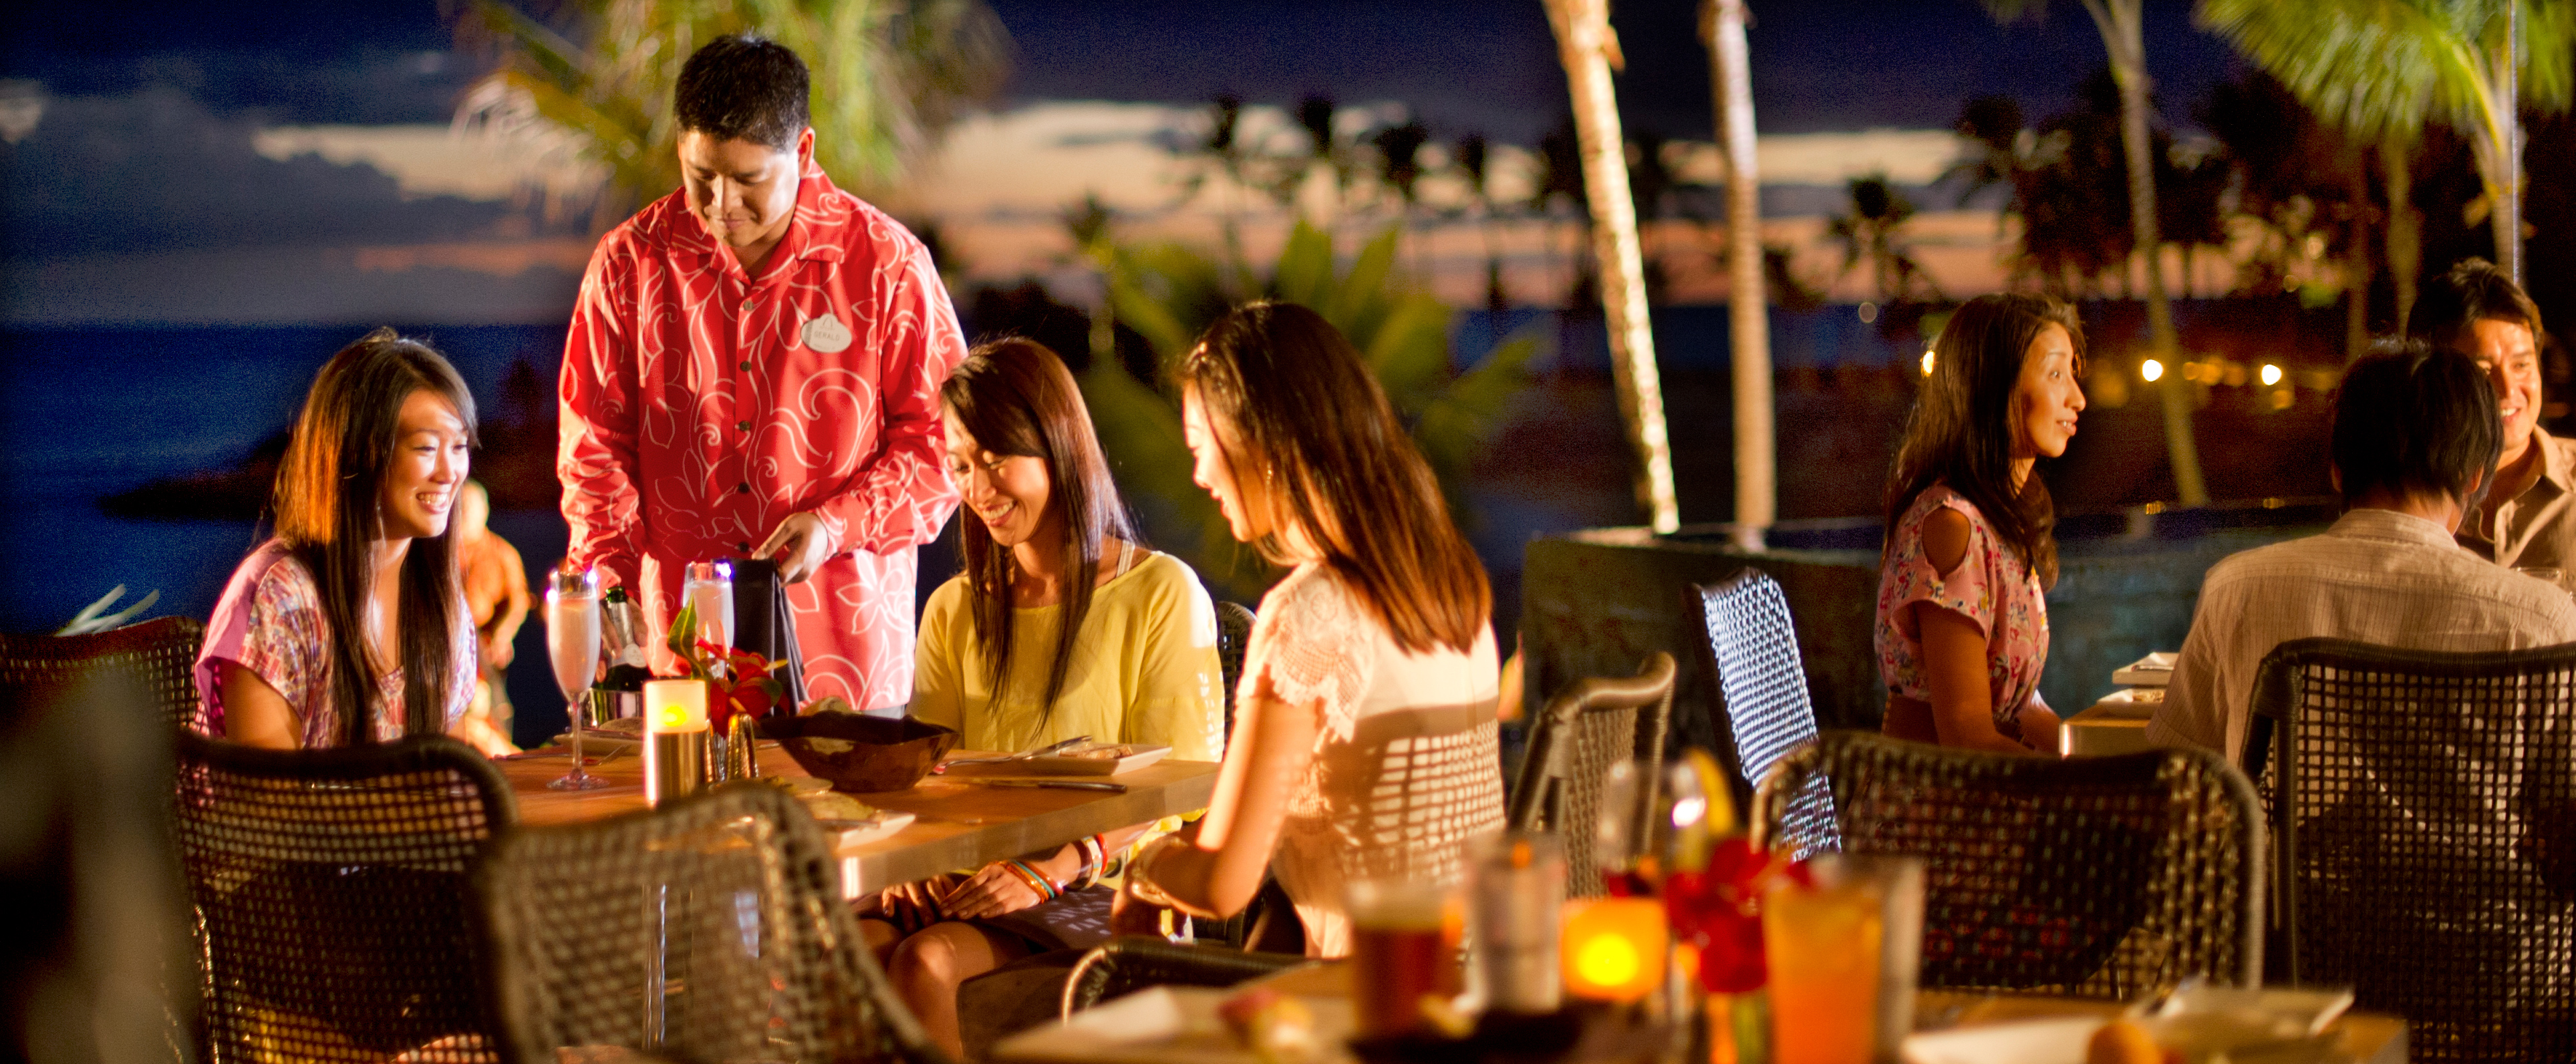 Three young women enjoy an outdoor evening meal with tableside Champagne service